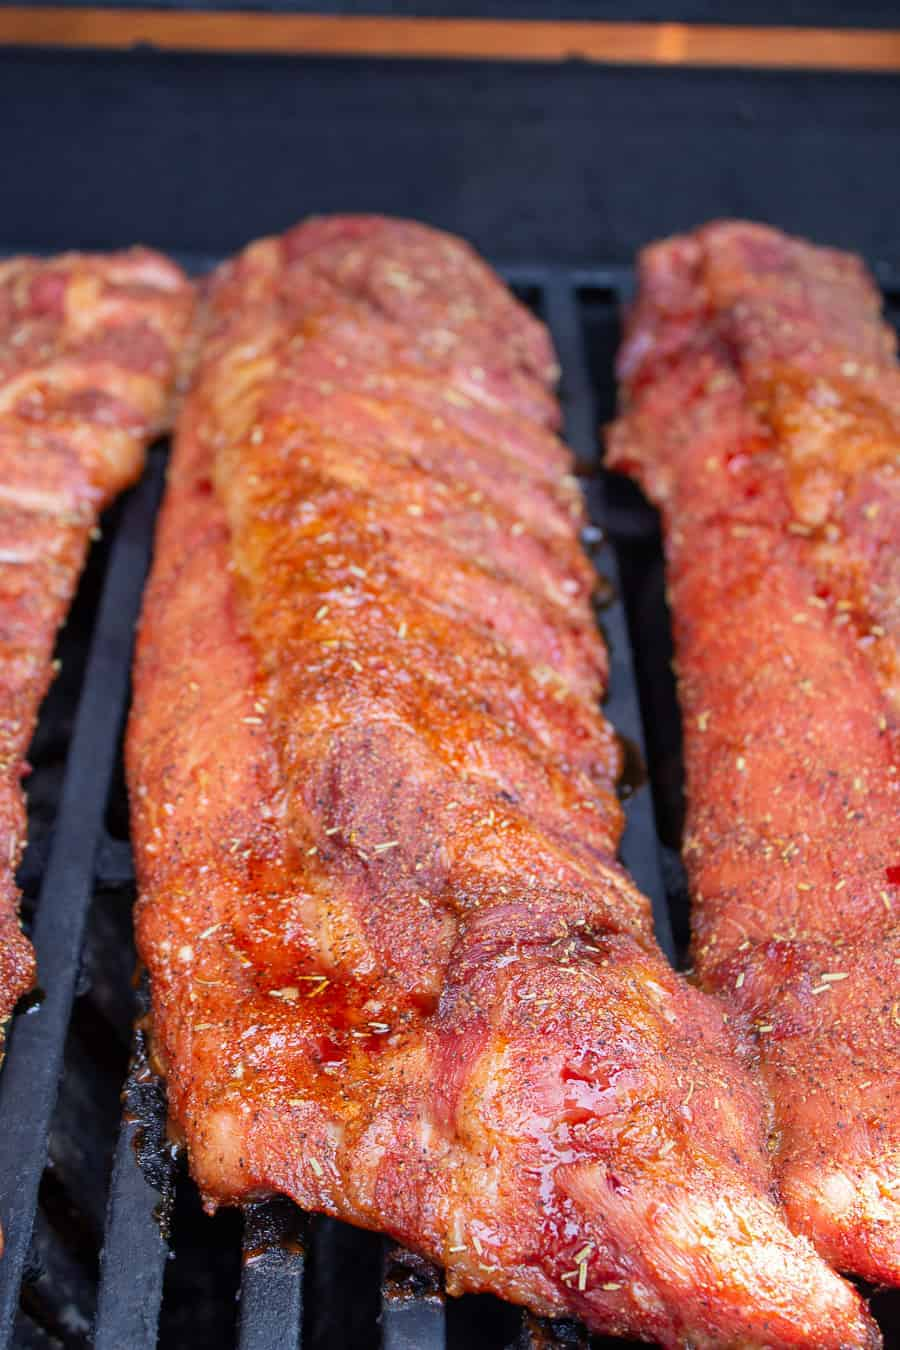 Pork ribs on grill.